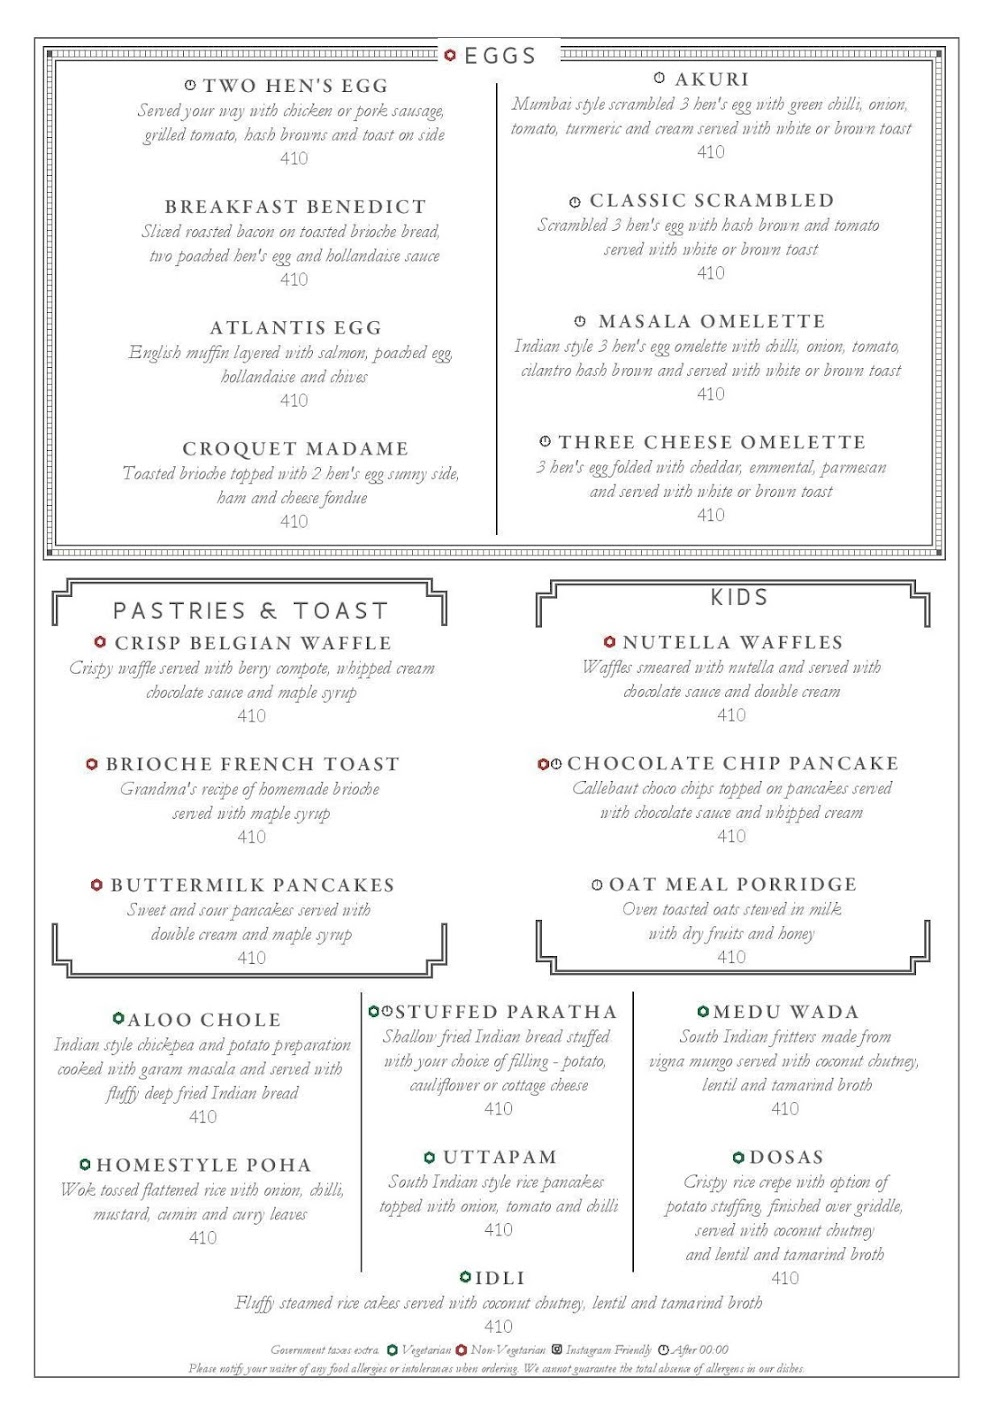 Long & Short - InterContinental menu 4